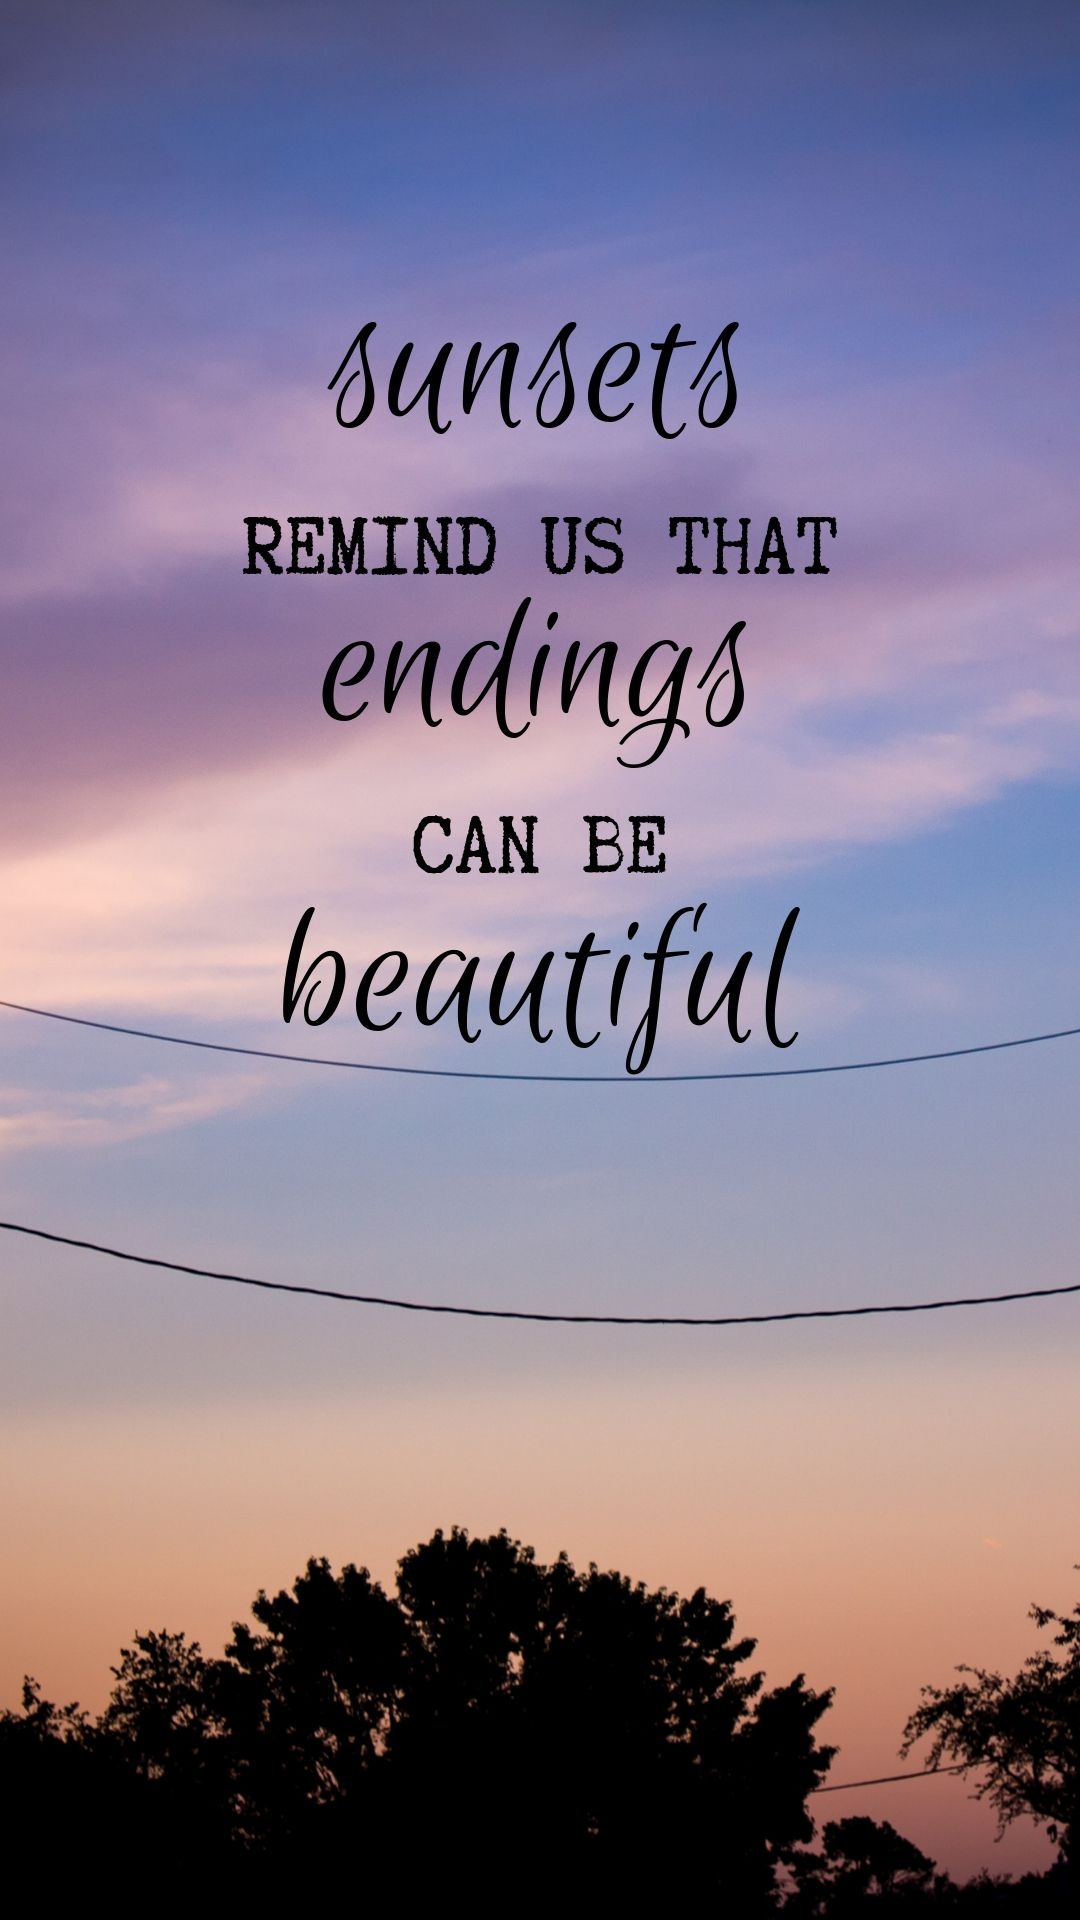 Sunsets Remind Us That Endings Can Be Beautiful Quote Lockscreen Inspirational Quotes Wallpapers Life Quotes Wallpaper Quotes Lockscreen